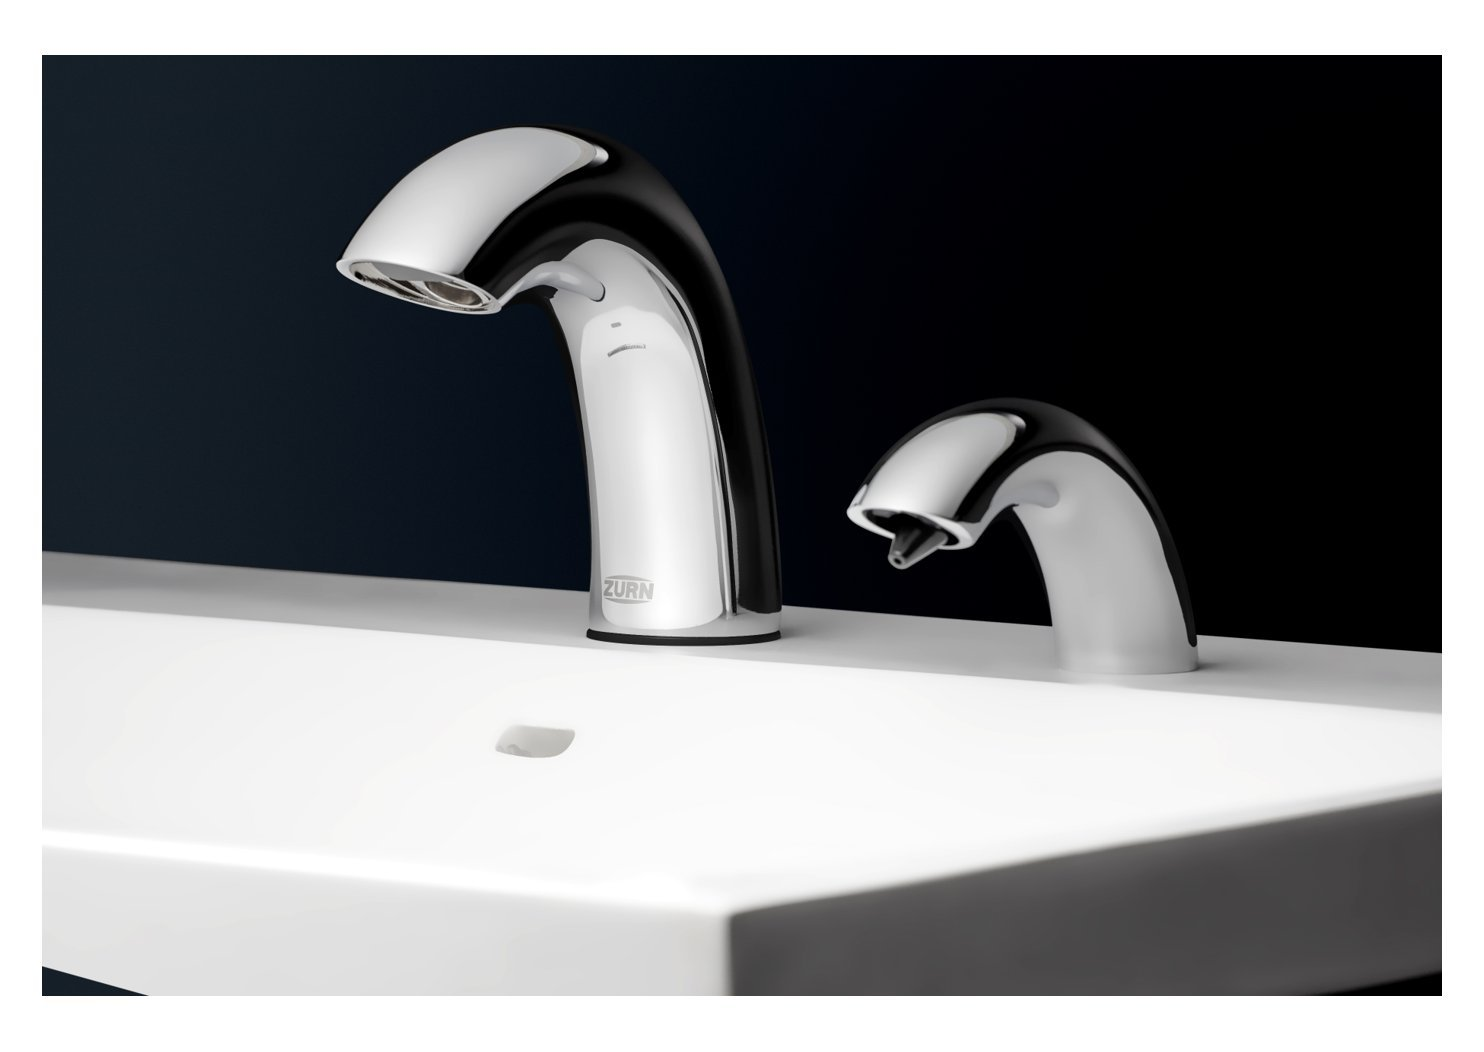 Amazon.com: Zurn: Faucets